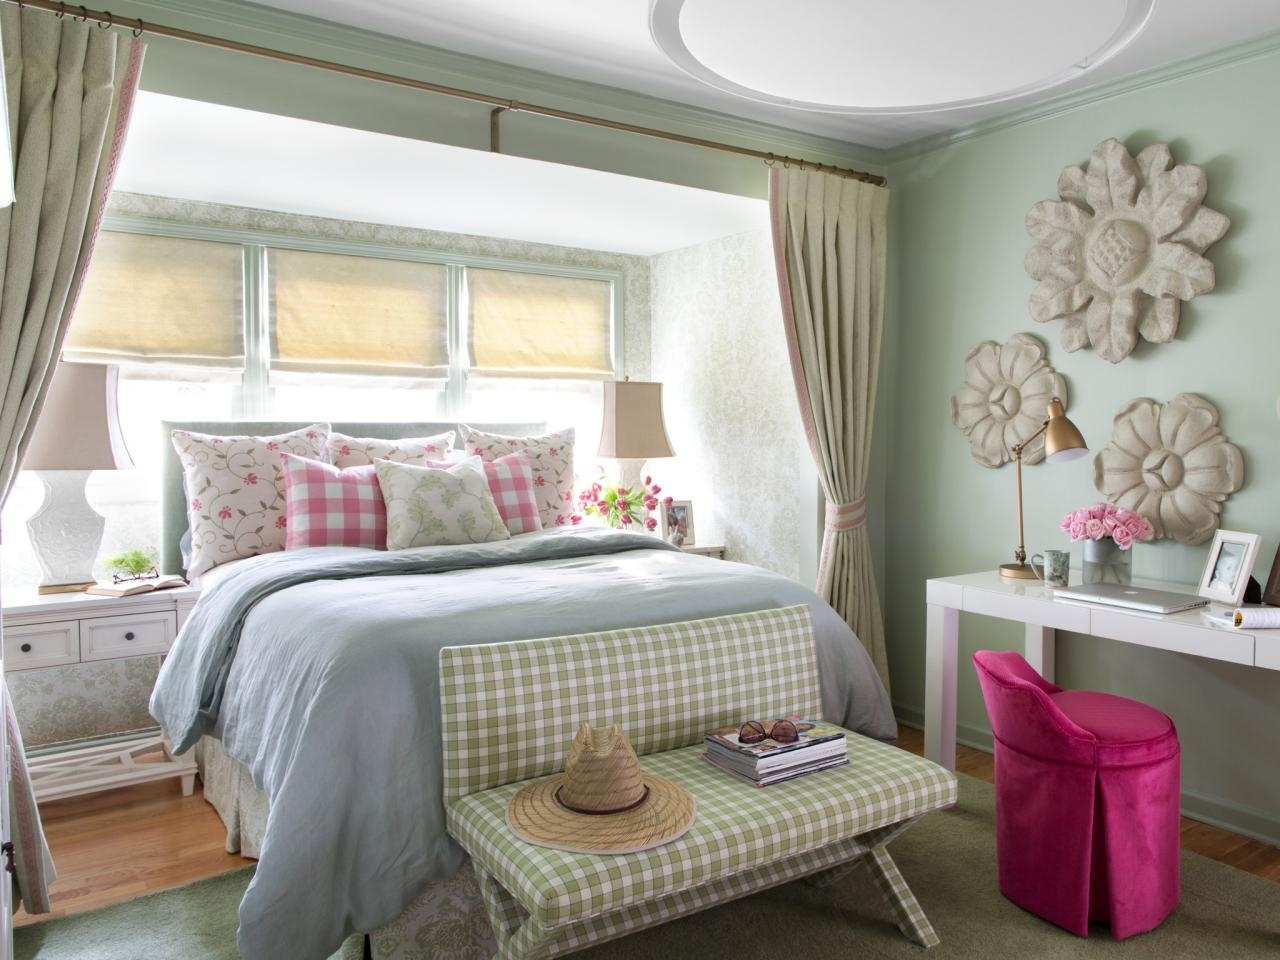 Country style bedroom interior design country bedroom interior design RCSZMVV